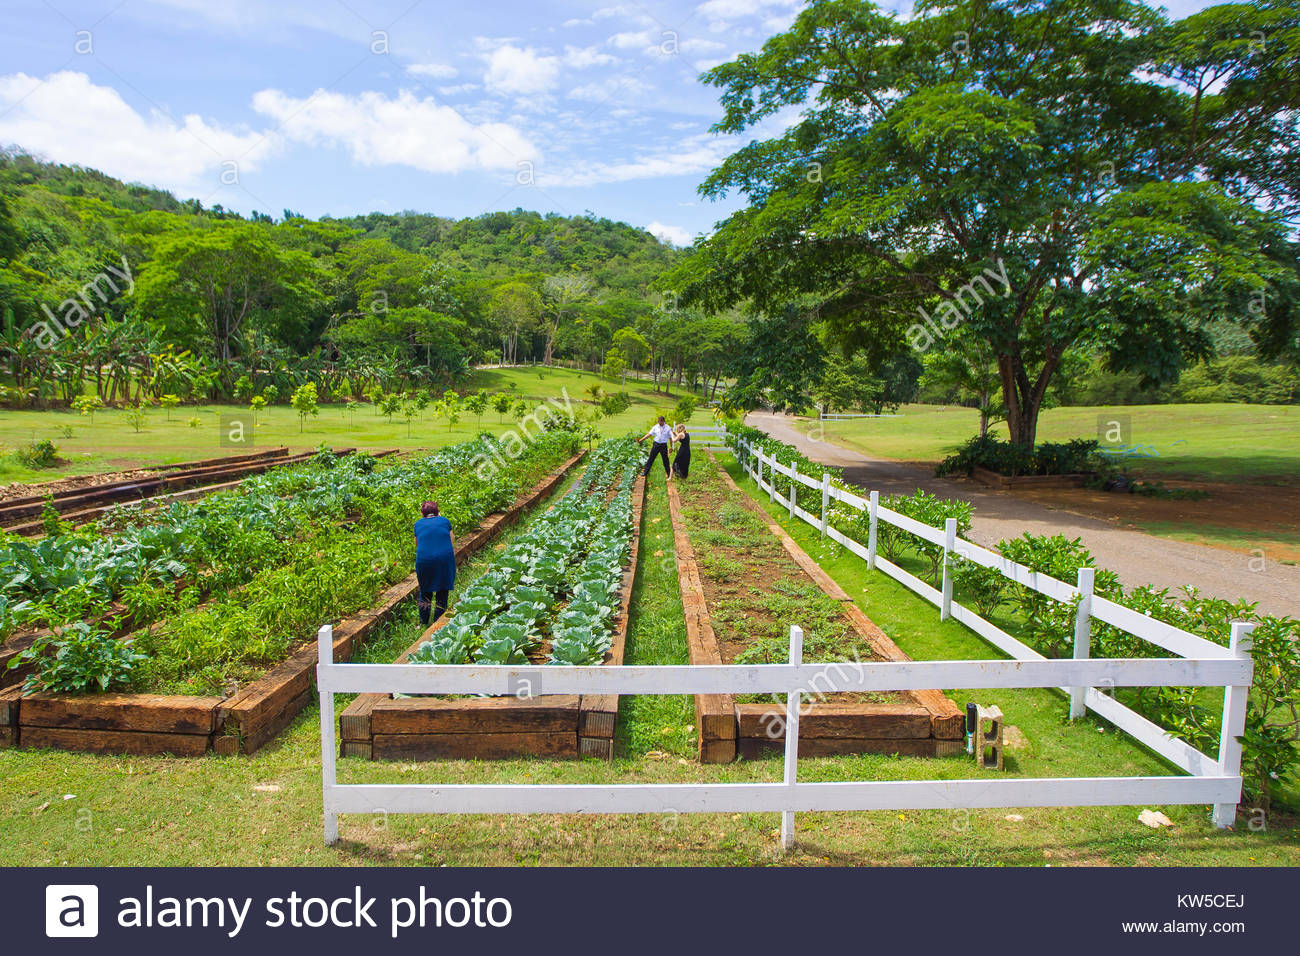 Farmers growing vegetables in elevated beds at the River Bumpkin Farm, in Jamaica. - Stock Image